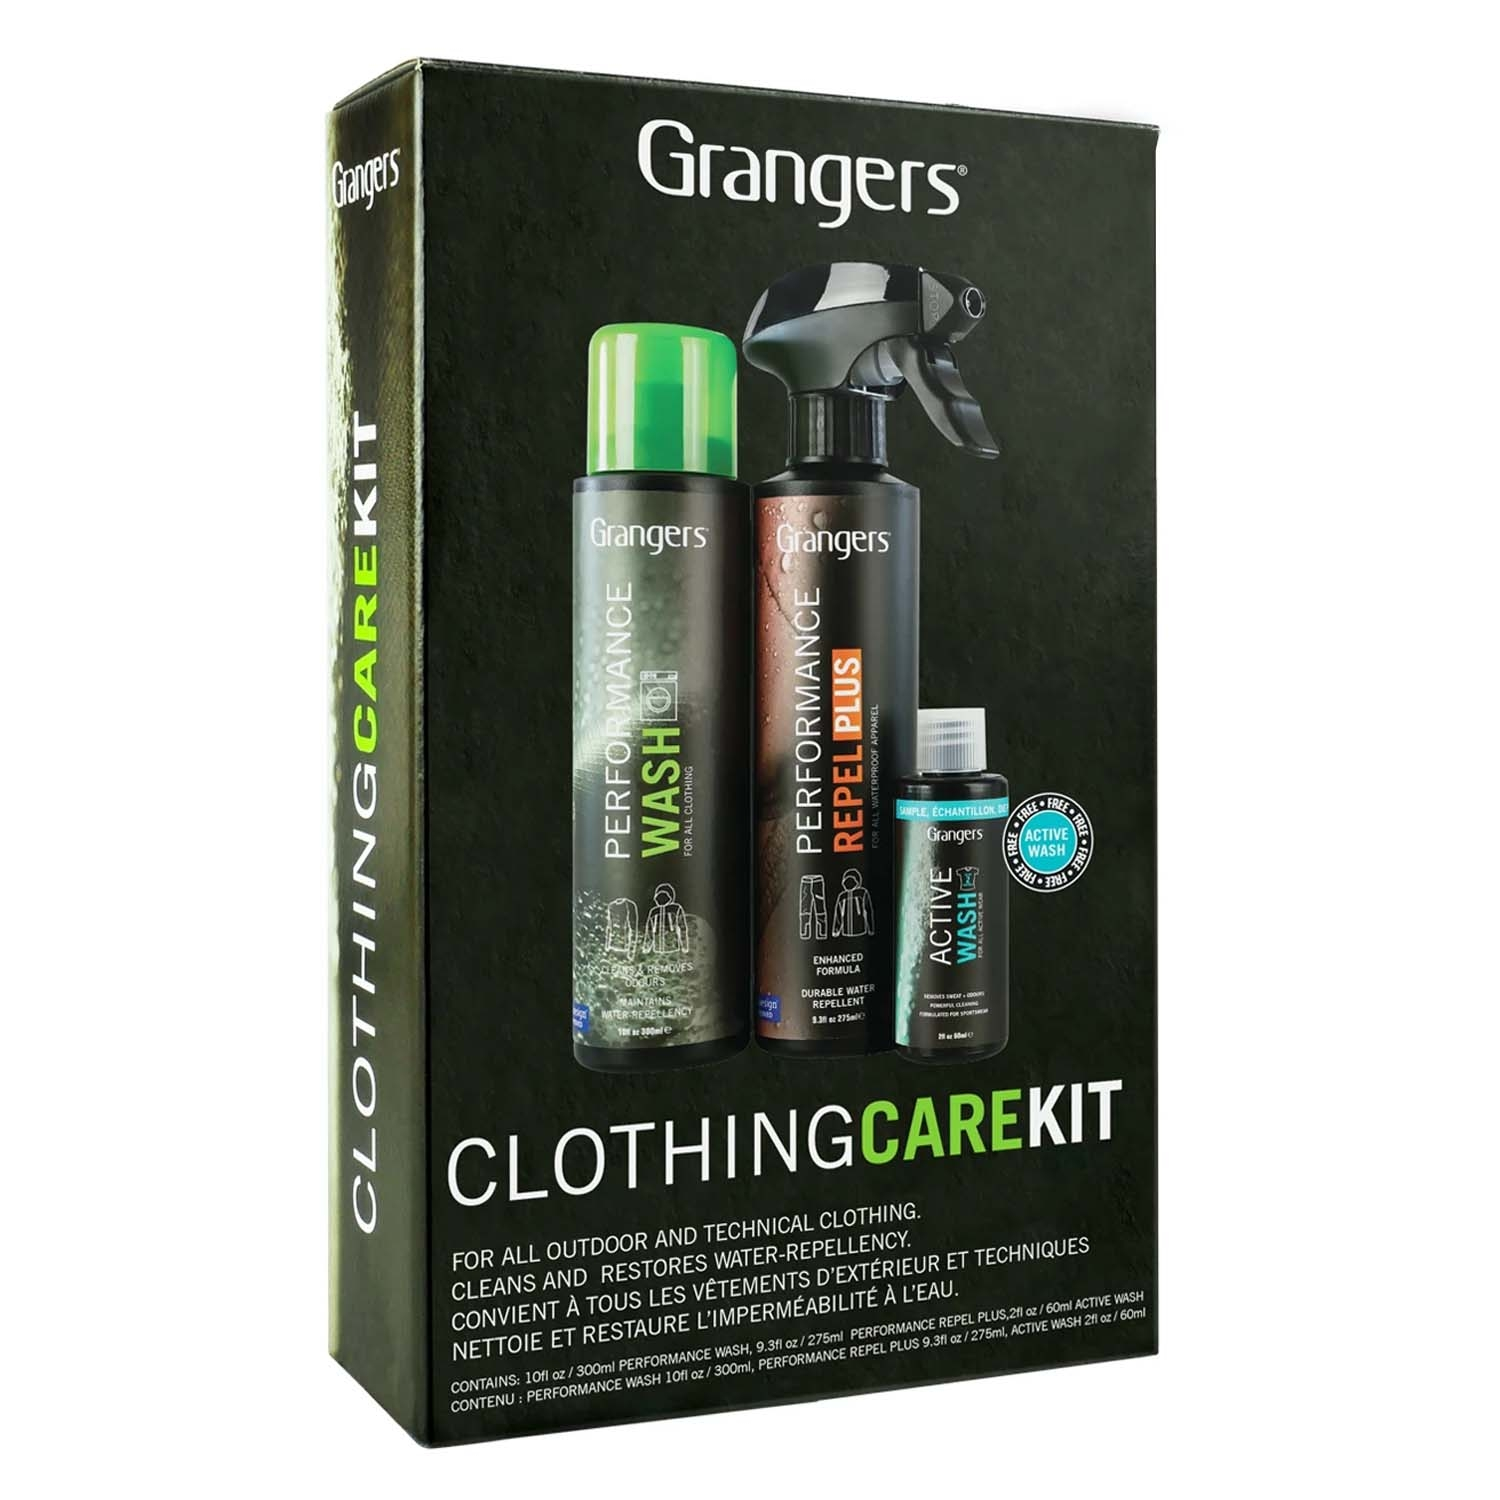 Grangers Clothing Care Clean Proof Kit